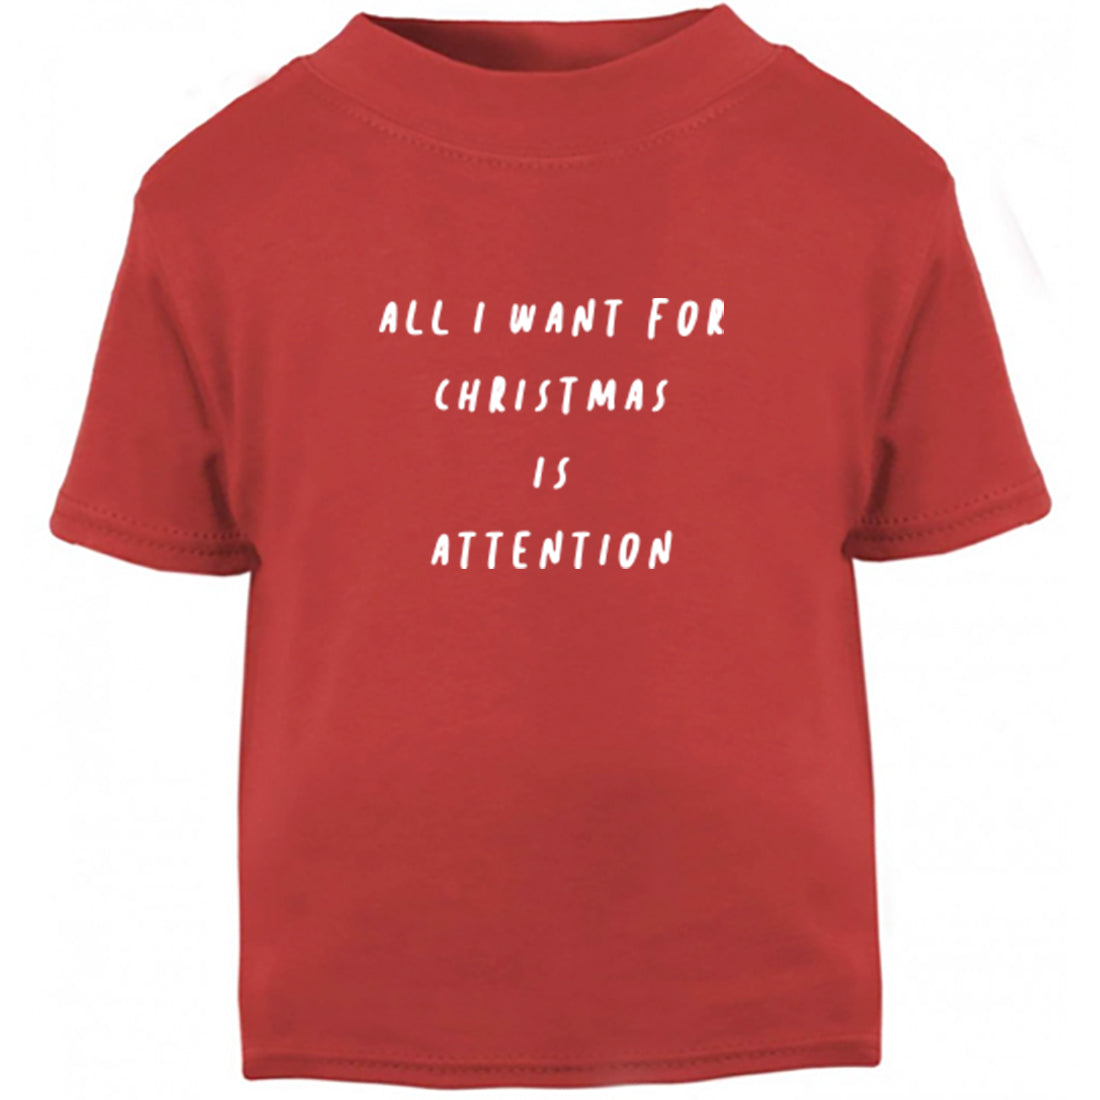 All I Want For Christmas Is Attention Childrens Ages 3/4-12/14 Unisex Fit T-Shirt K2468 - Illustrated Identity Ltd.